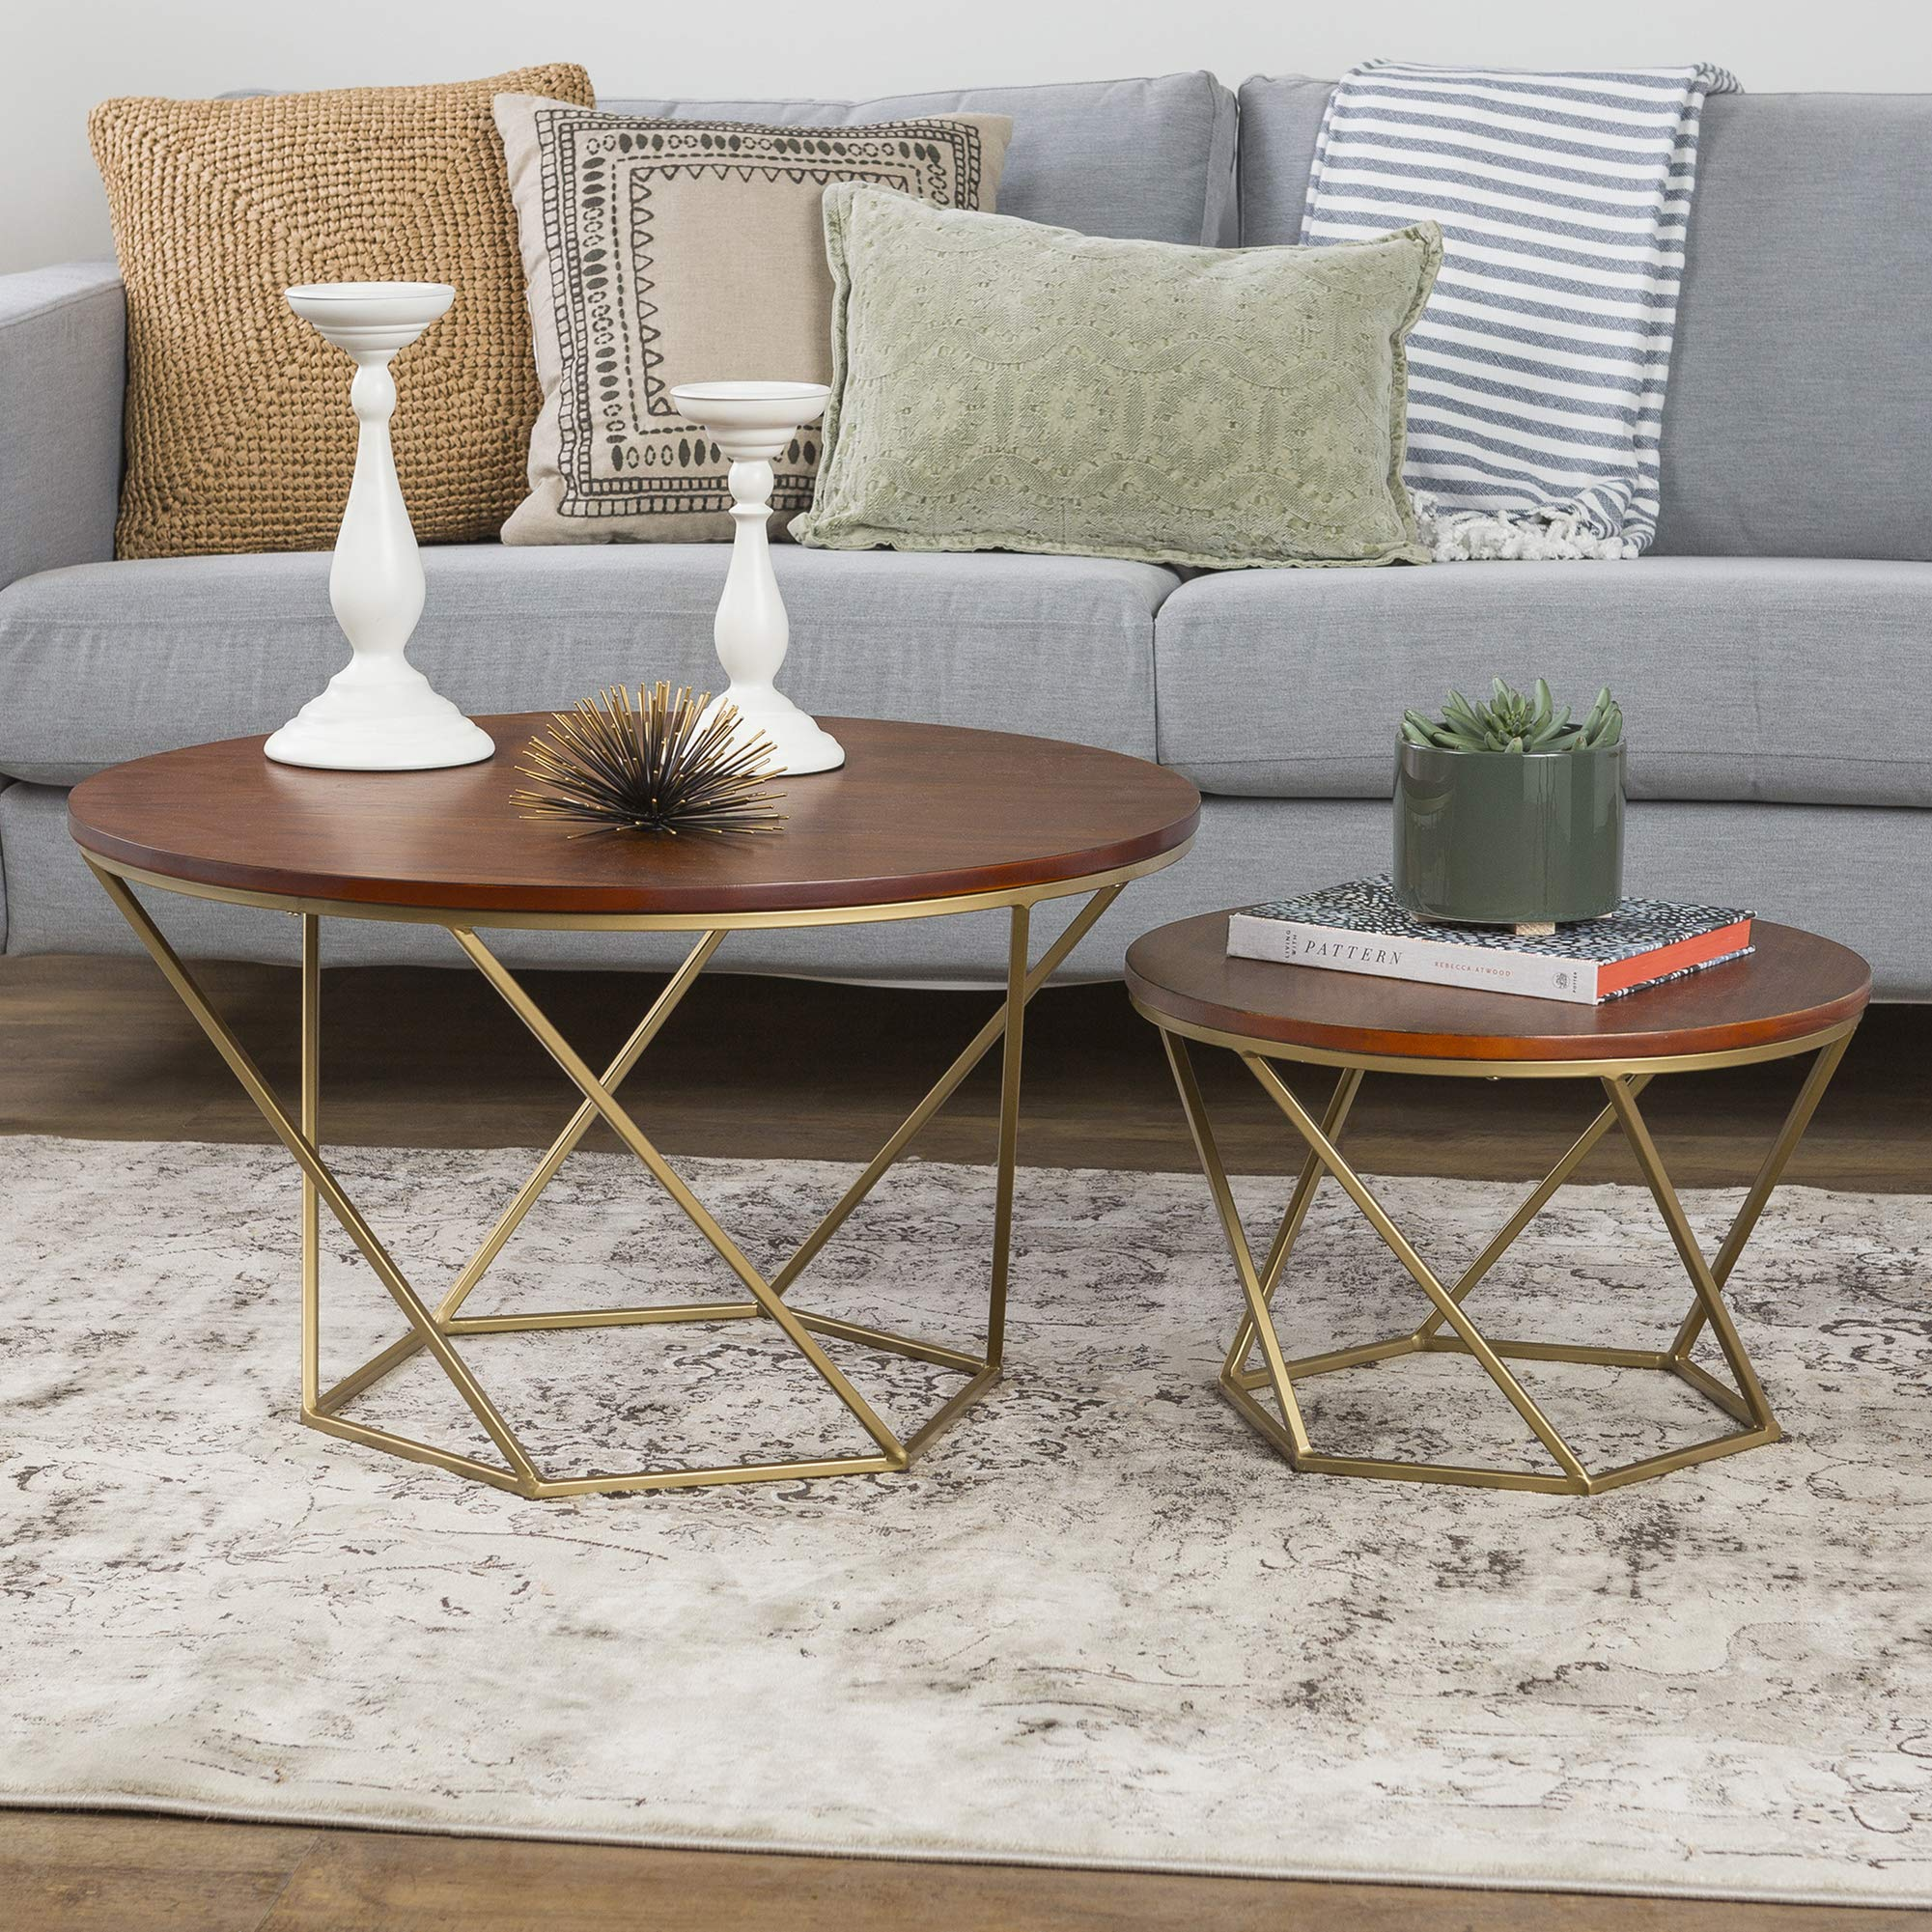 WE Furniture Modern Round Nesting Coffee Accent Table Living Room, Set of 2, Walnut/Gold by WE Furniture